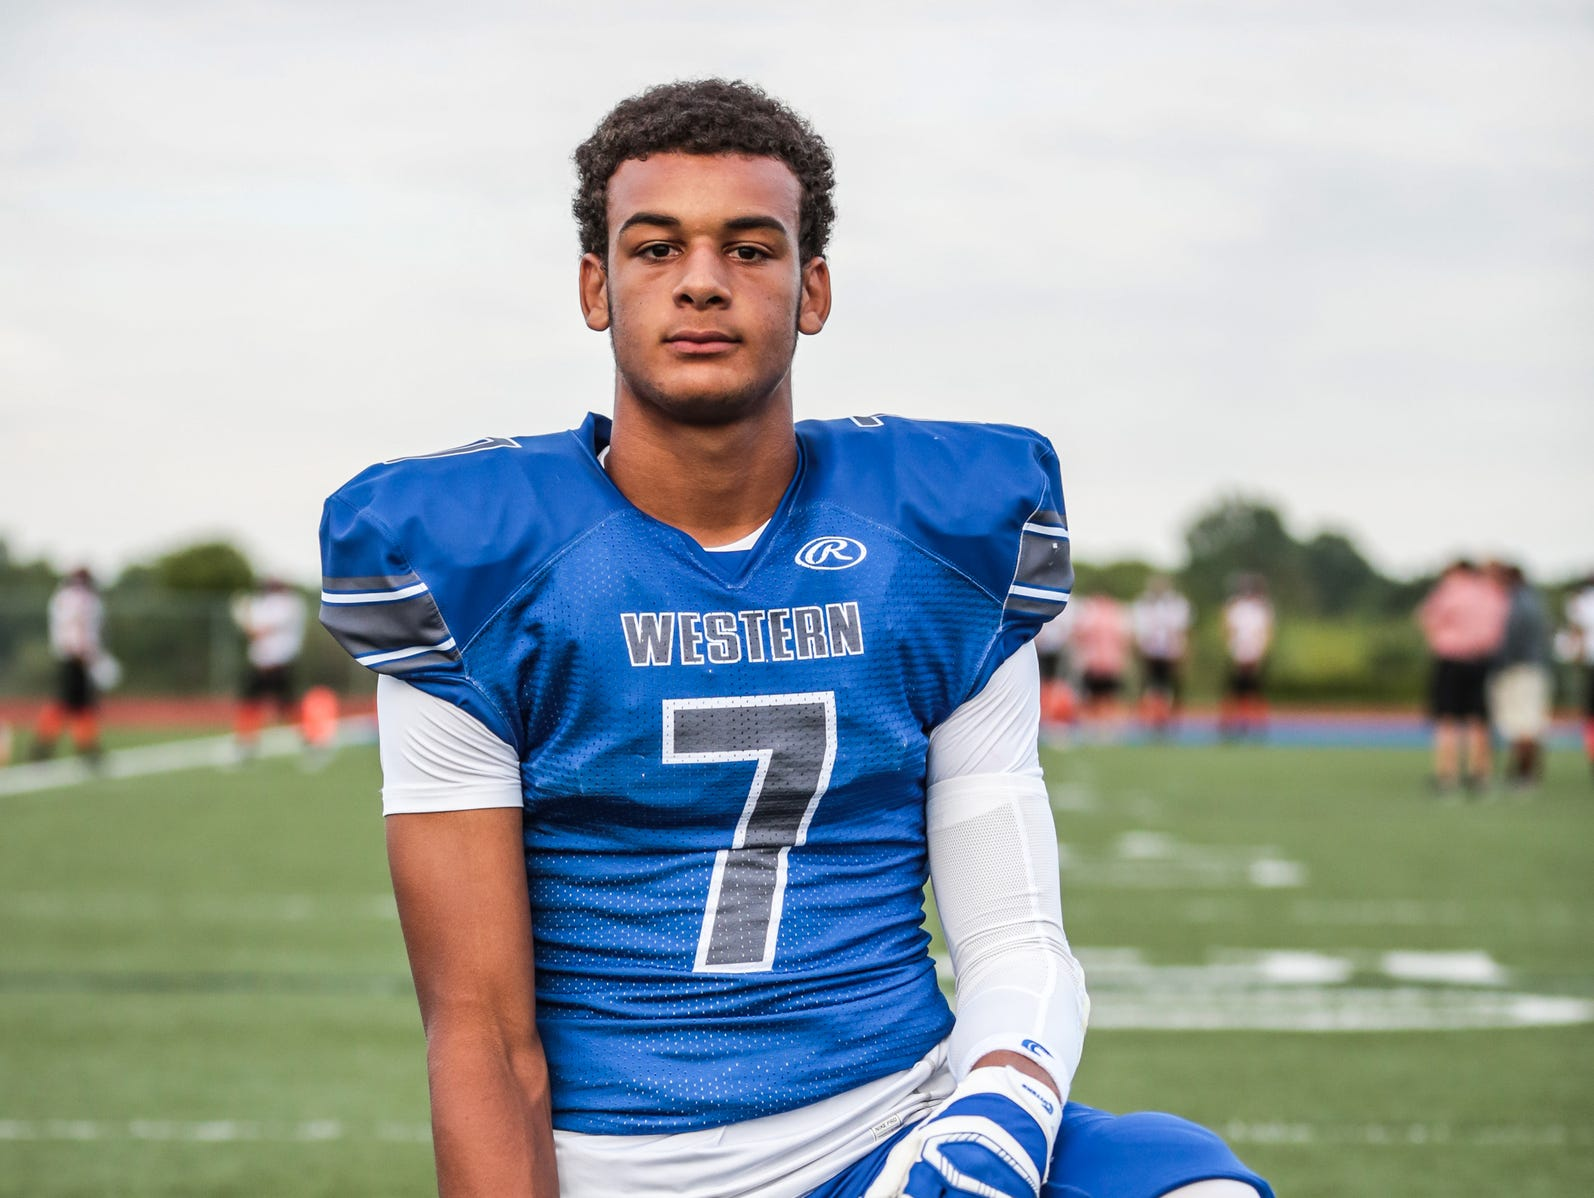 Walled Lake Western's Cody White photographed before a game against Northville on Sept. 9, 2016 at Warriors Stadium in Walled Lake.